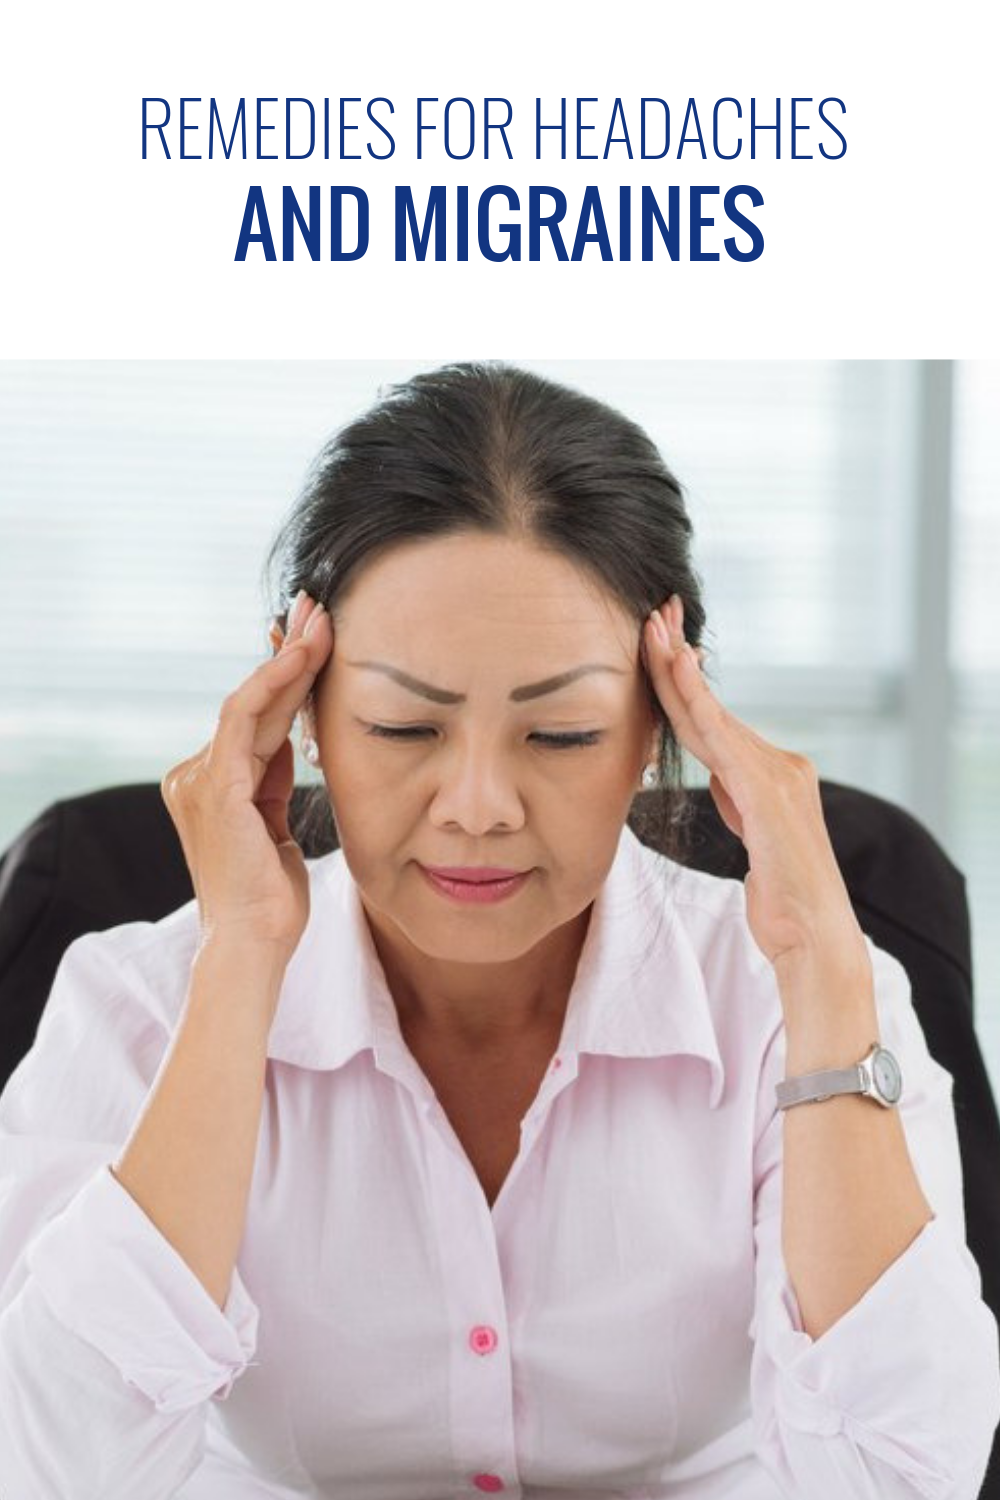 Remedies for Headaches and Migraines